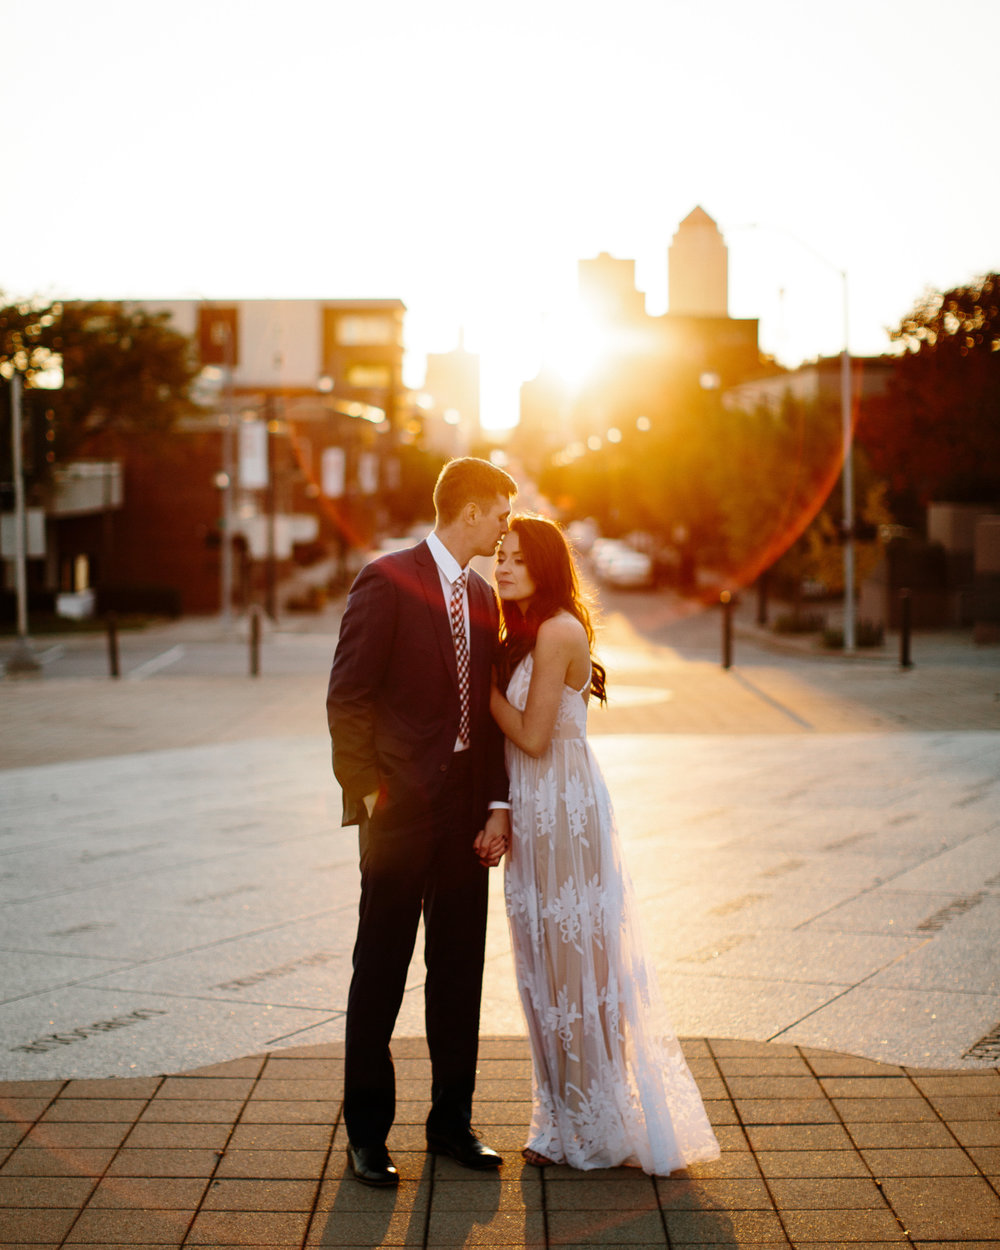 wedding-elopement-adventerous-romantic-timeless-des-moines-siouxfalls-photography-31.jpg